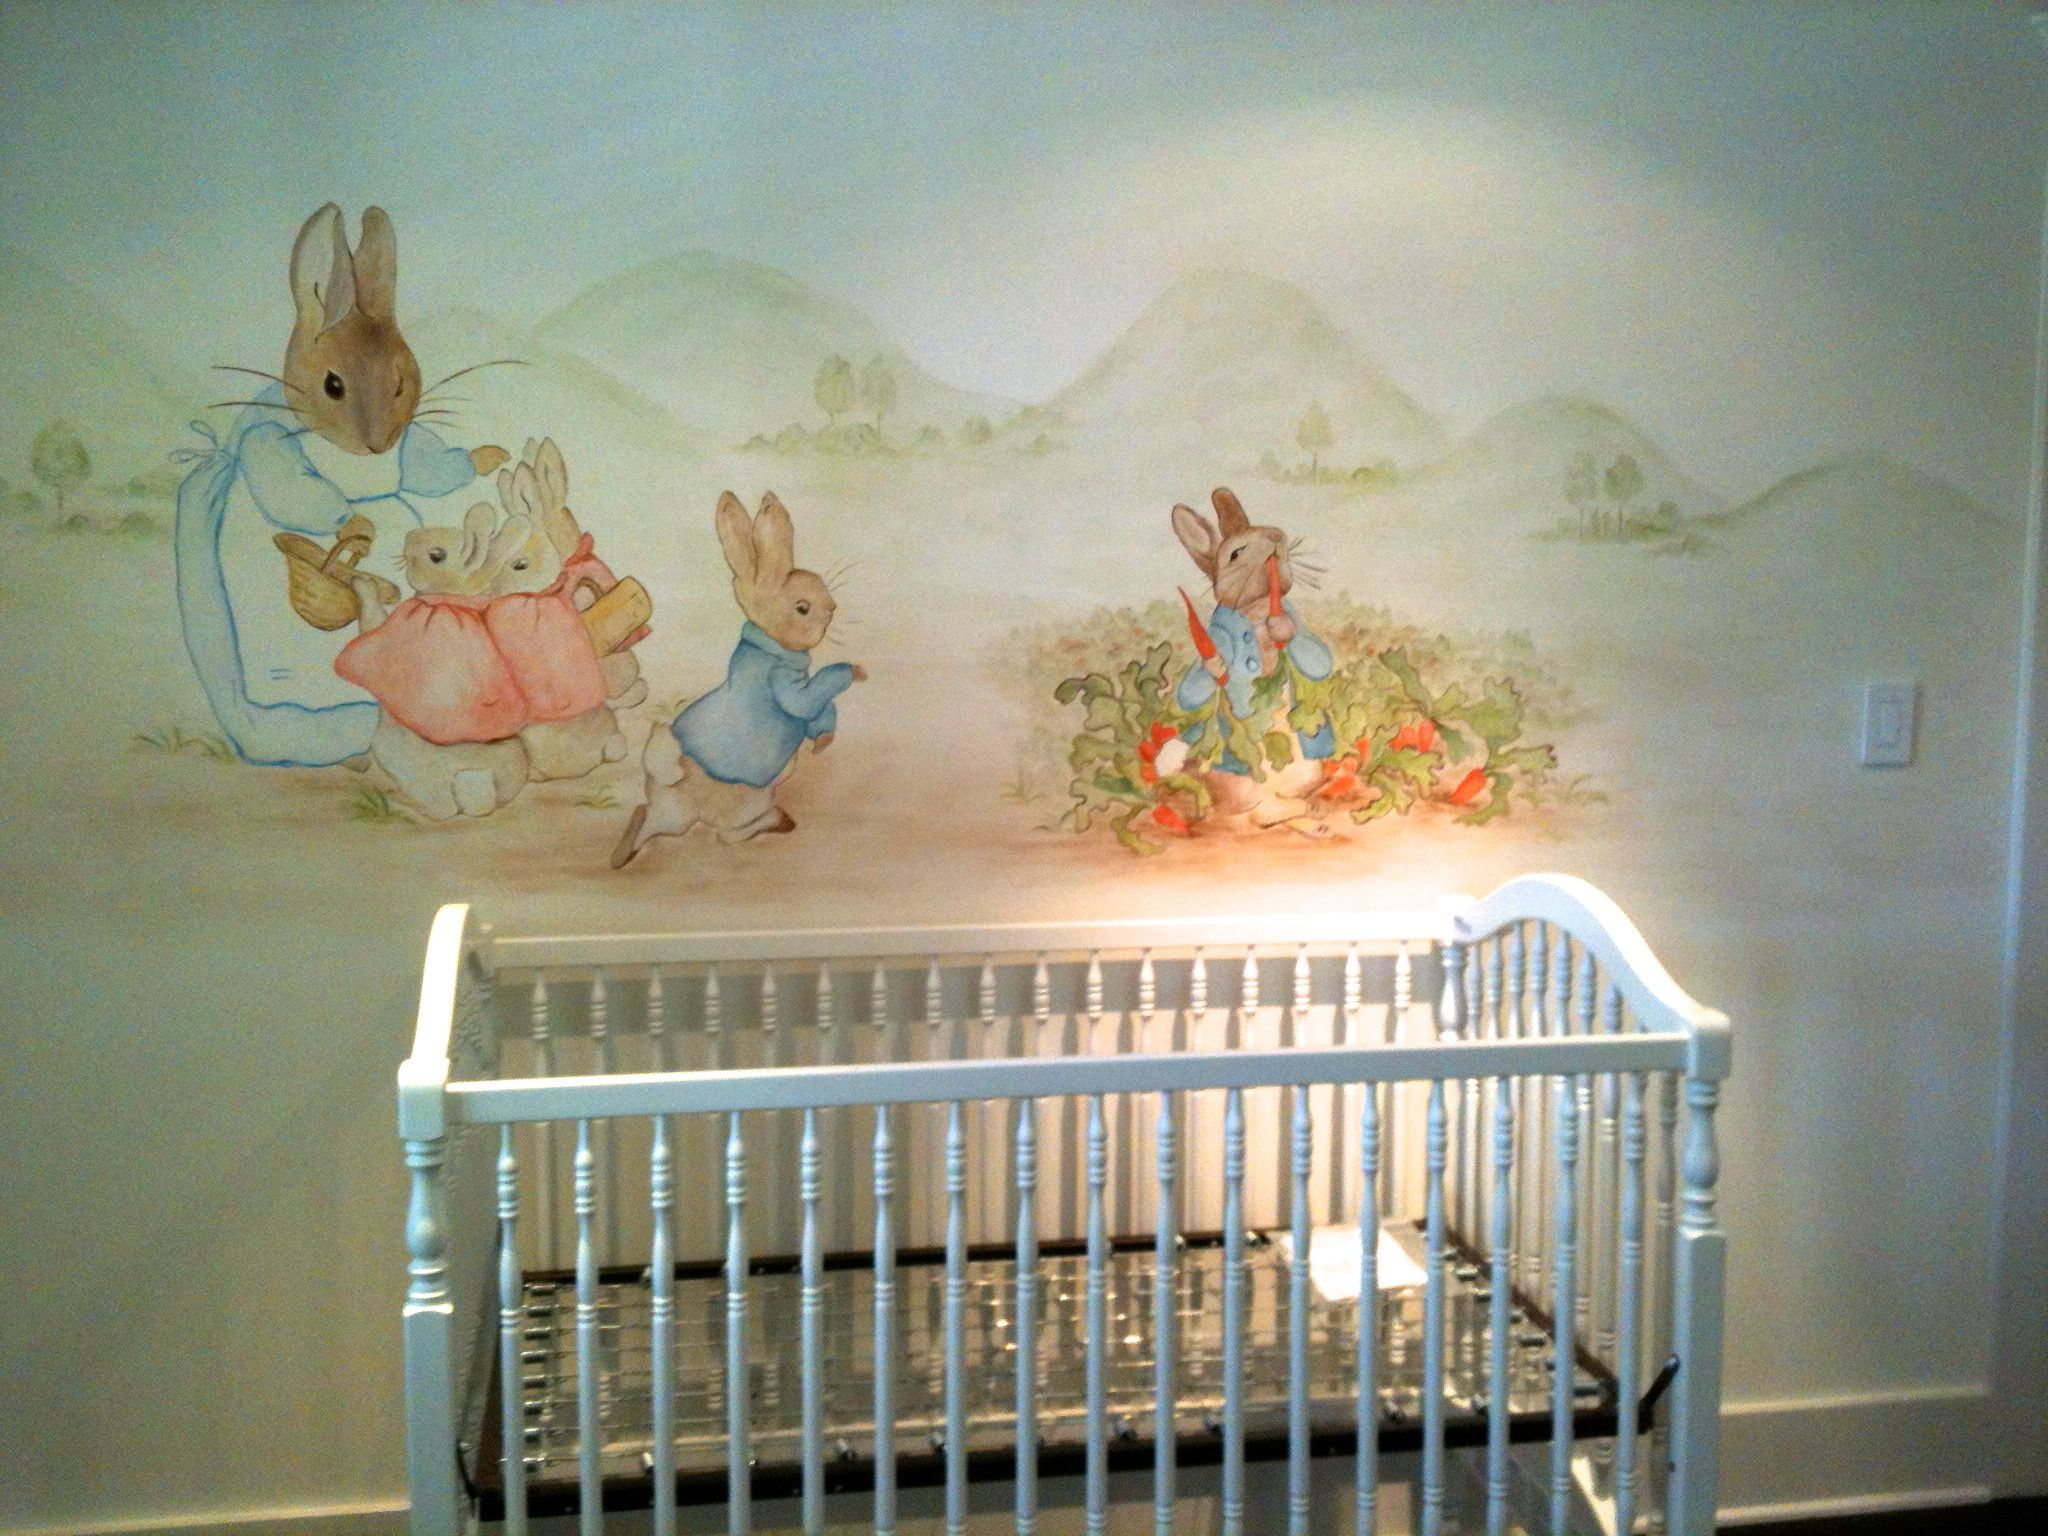 Mural After The Book Peter Rabbit